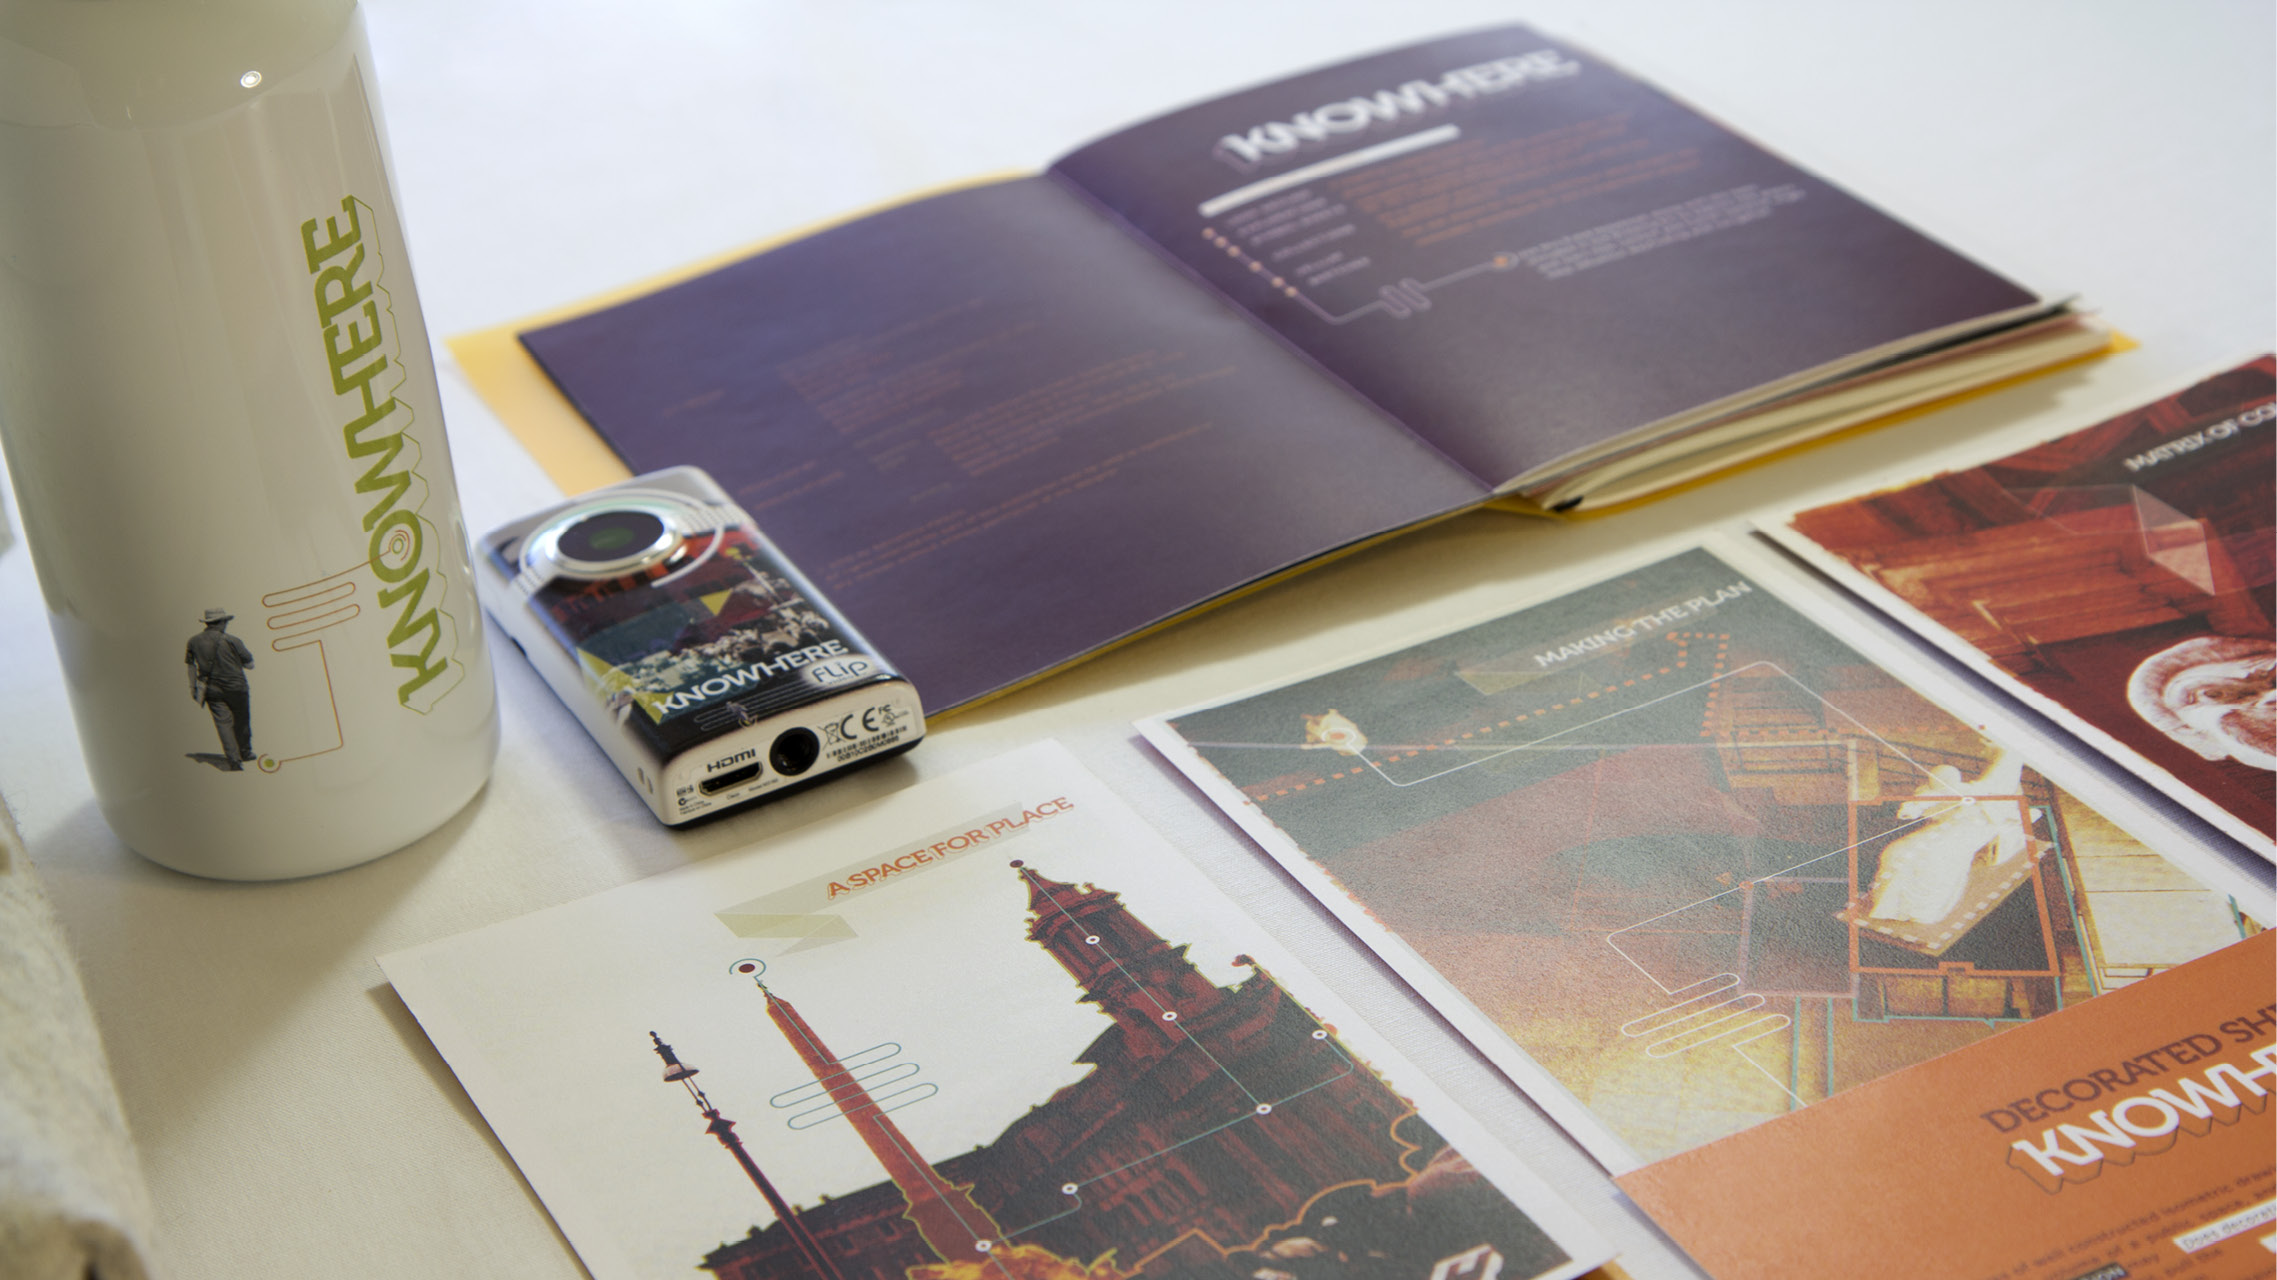 details of roadkit components—cards, field book, camera, and water bottle